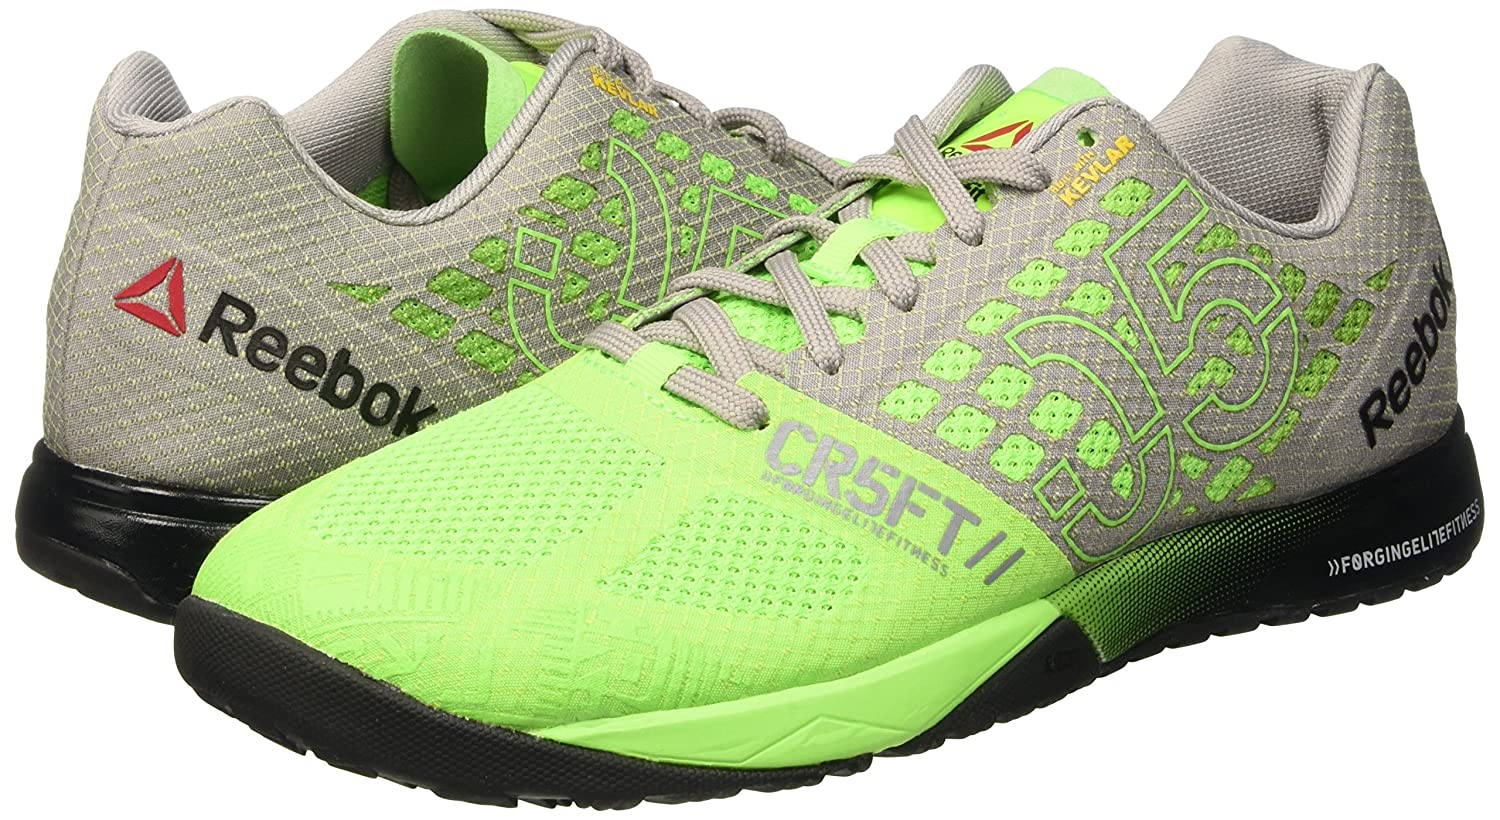 Reebok Crossfit Nano 6.0 Mens Uk CbcN7